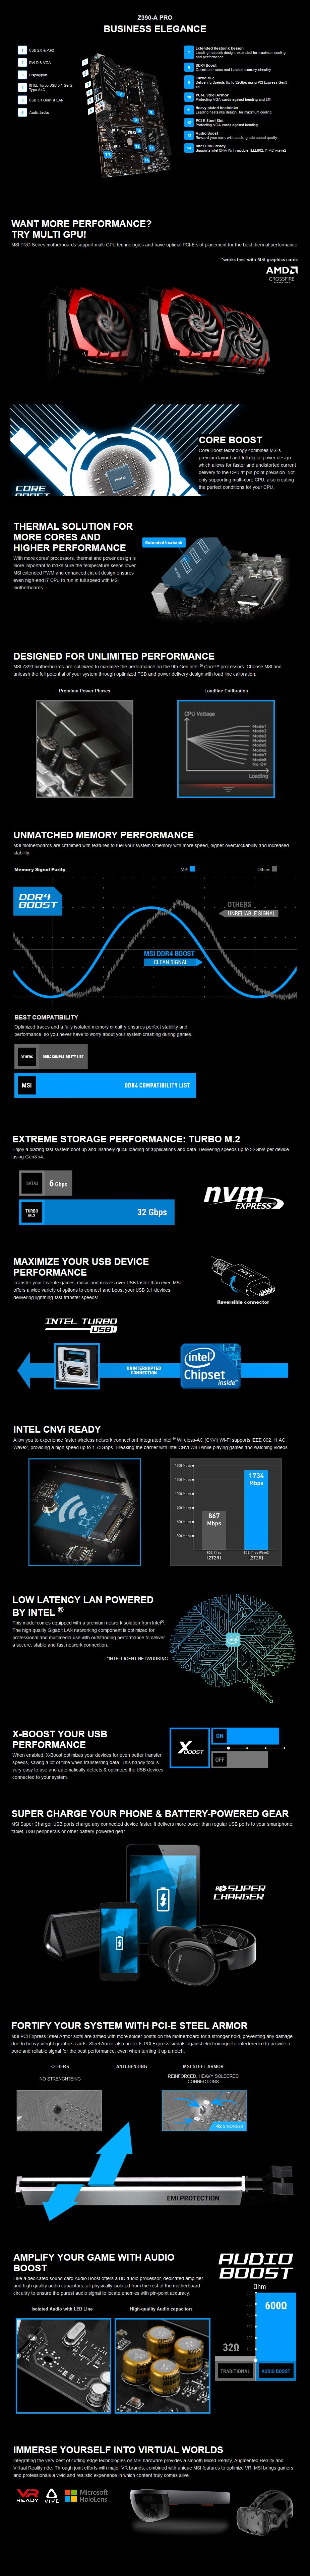 MSI Z390-A PRO LGA 1151 ATX Motherboard - Desktop Overview 1